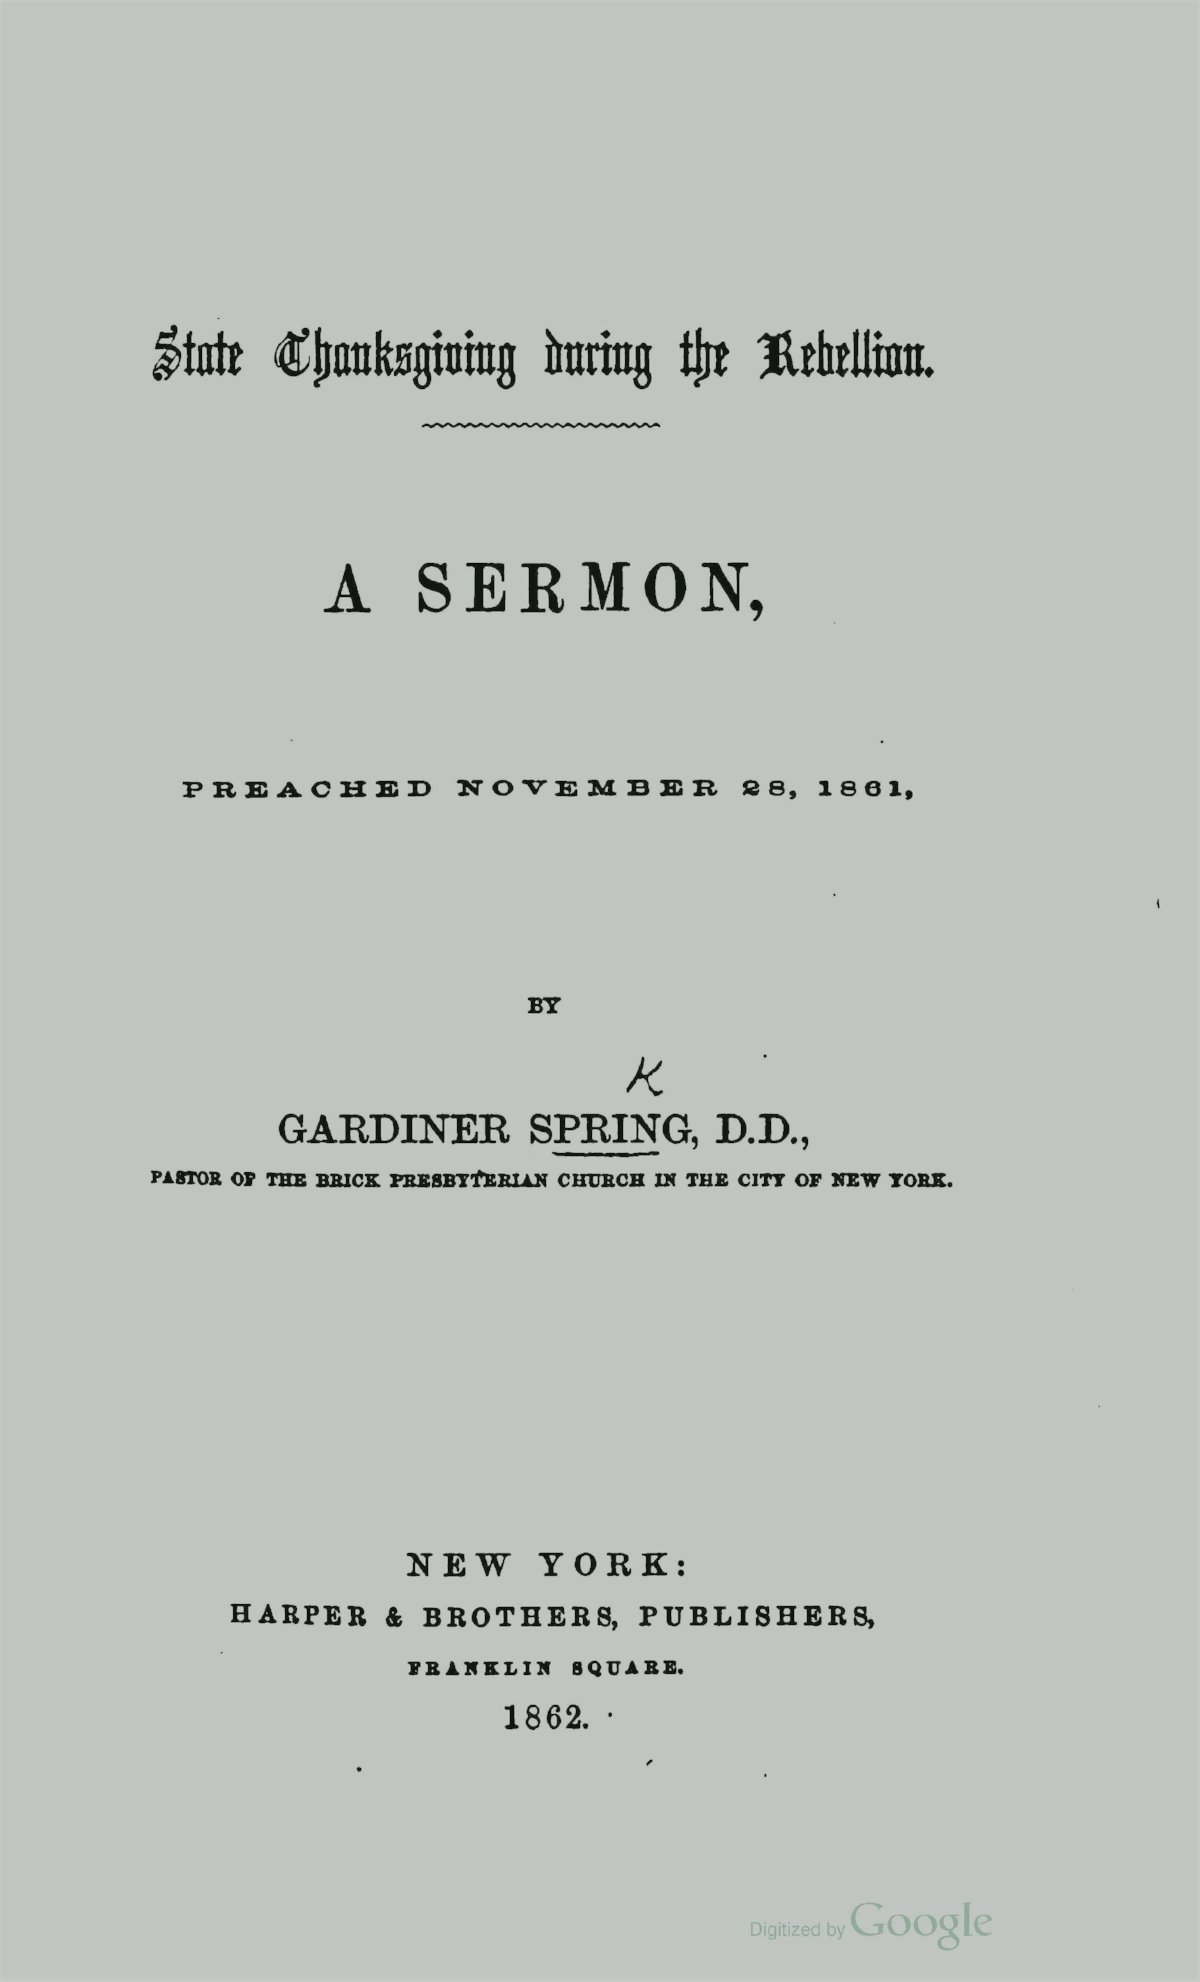 Spring, Gardiner, State Thanksgiving During the Rebellion A Sermon Title Page.jpg